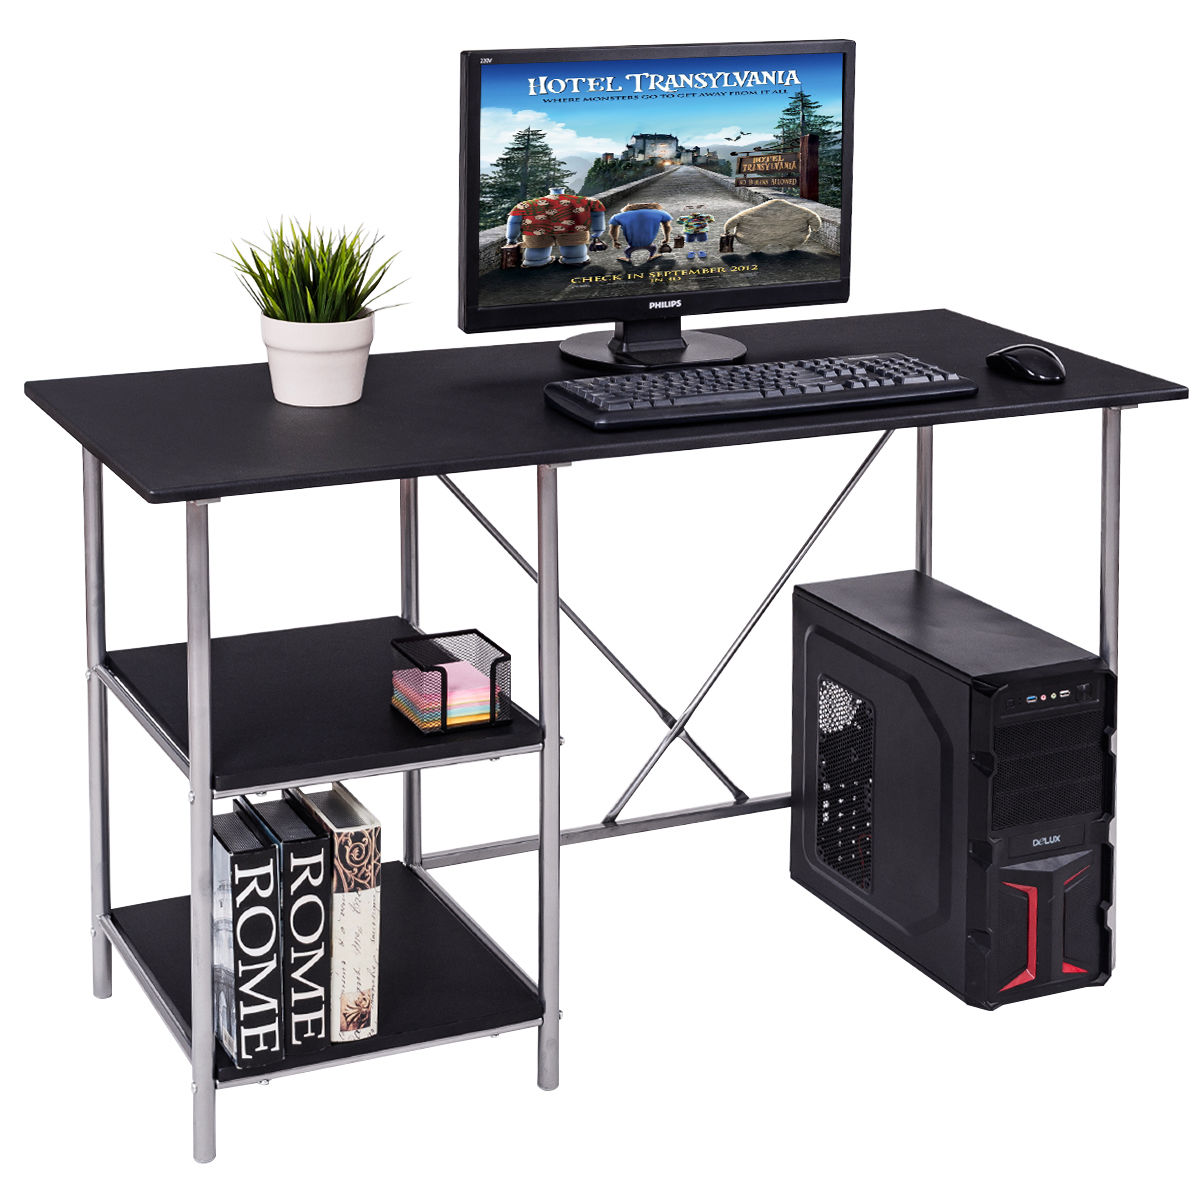 Giantex Computer Desk PC Laptop Table Modern Workstation With Shelves Study Writing Home Office Furniture HW55394